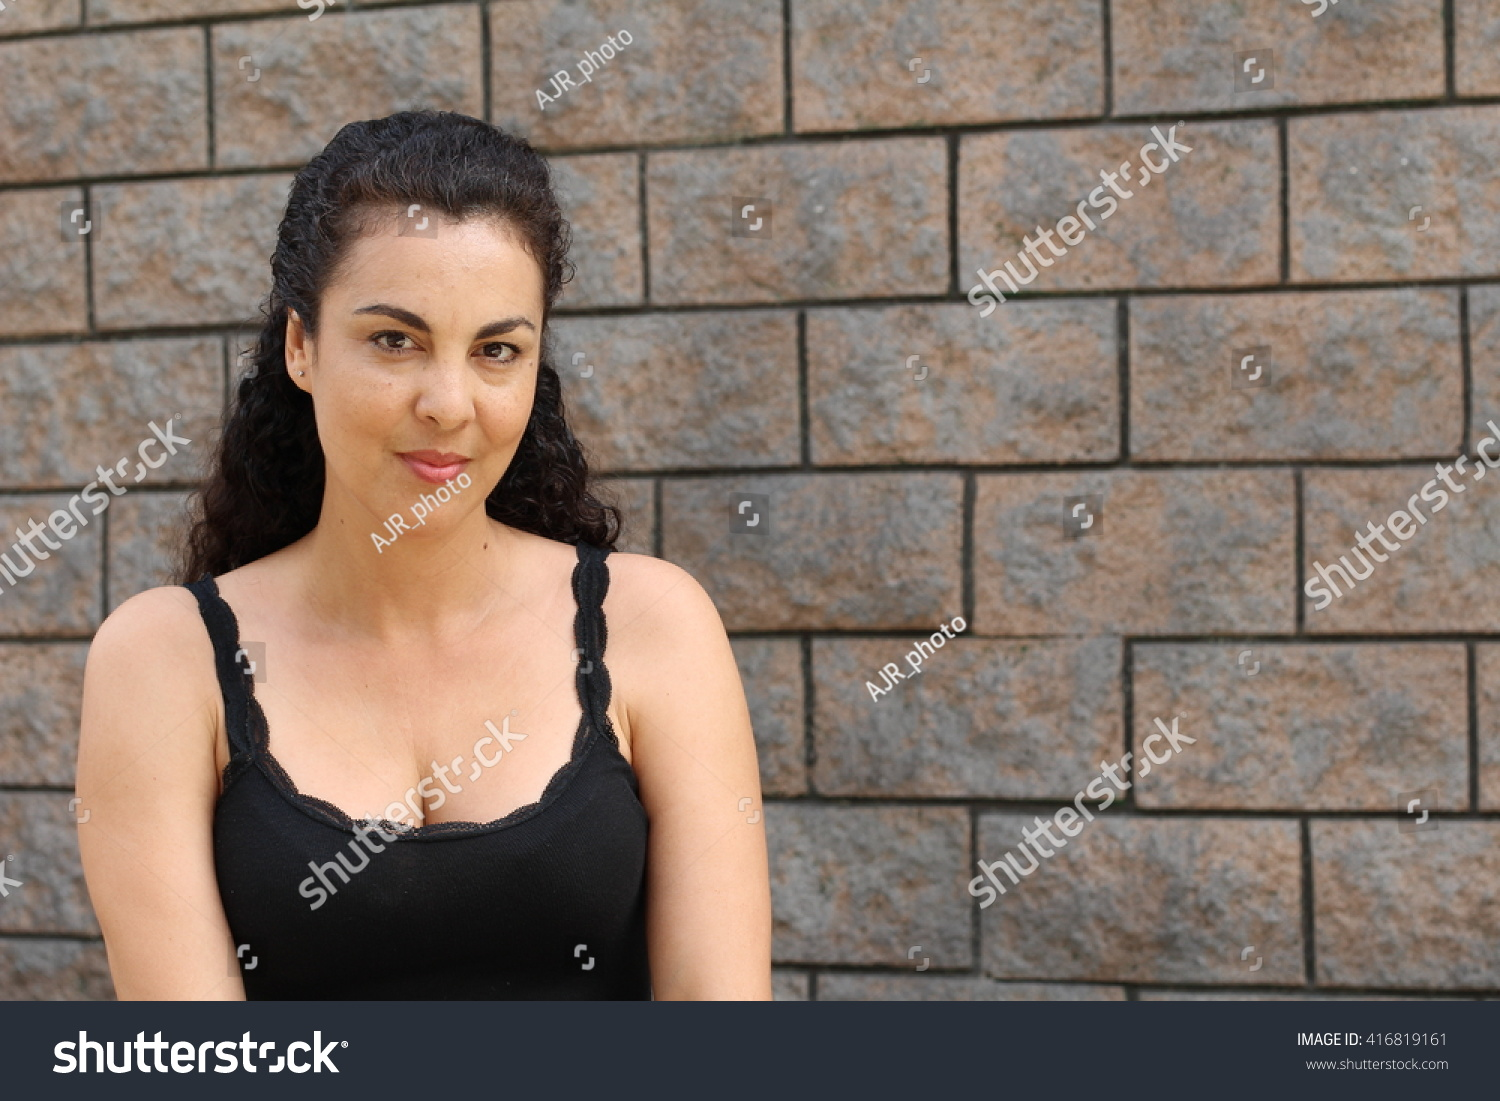 Sexy Dressed Mature Woman On Textured Stock Photo 416819161 - Shutterstock-8684